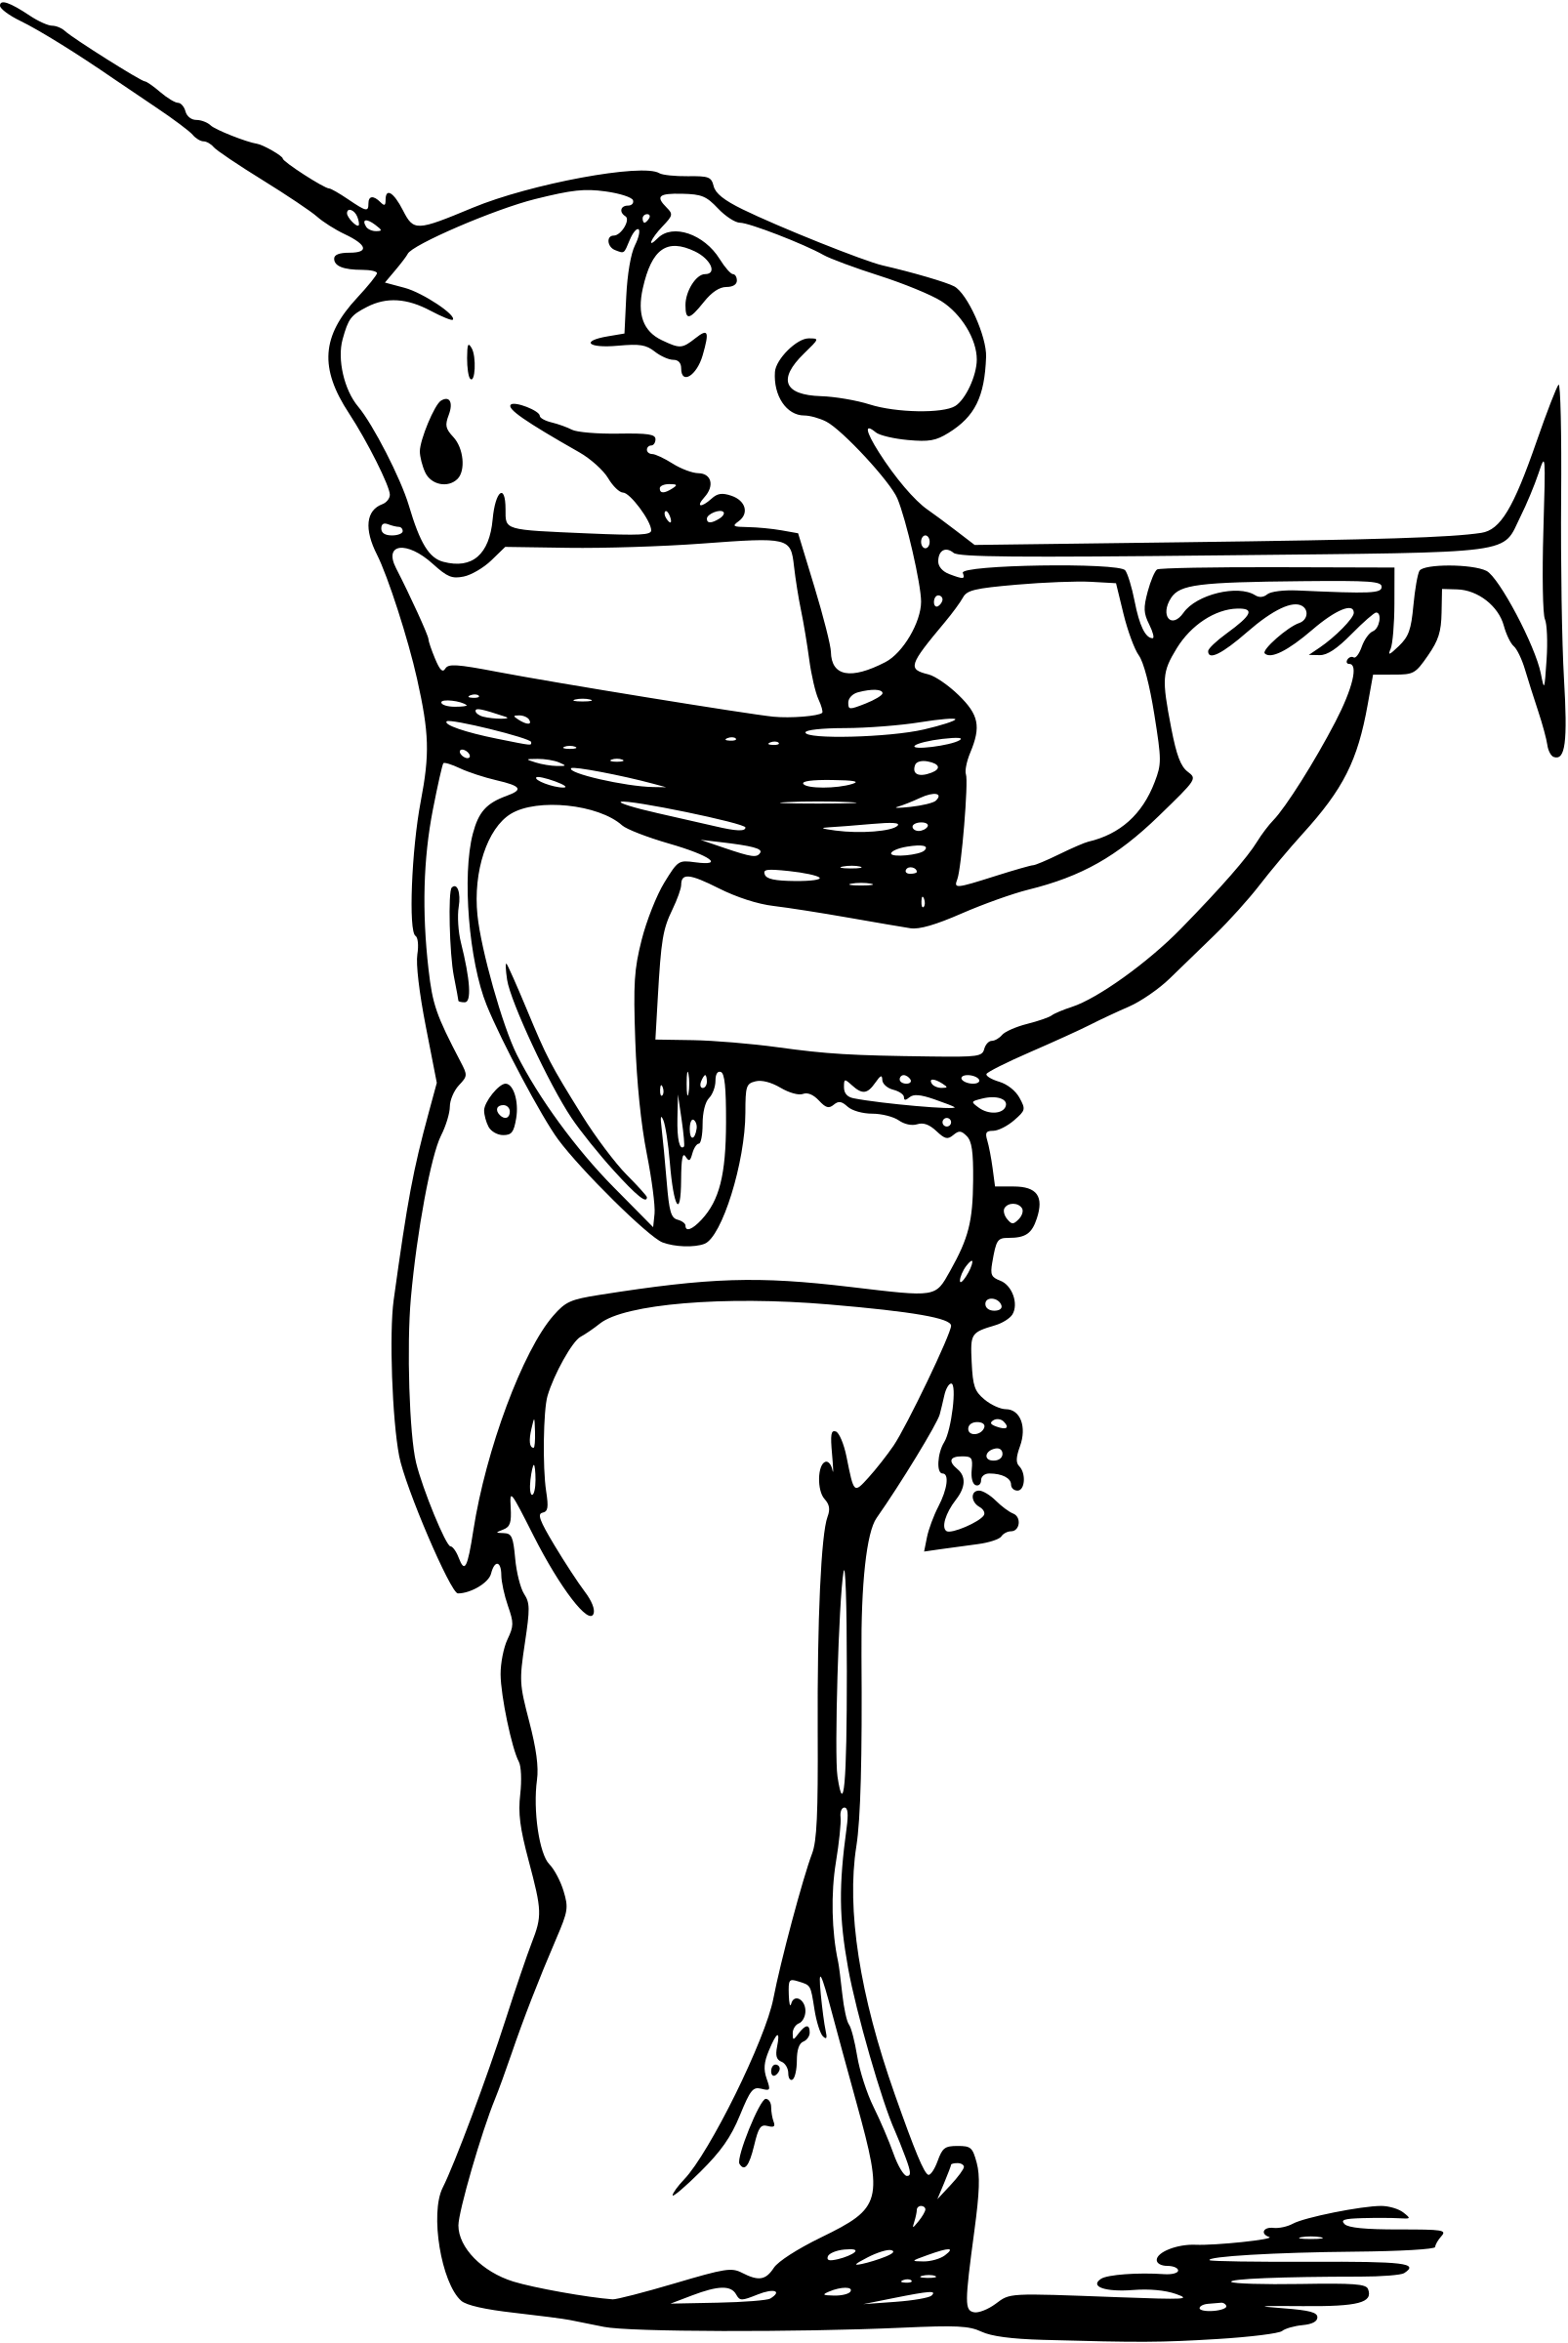 Comic character 62 by Firkin